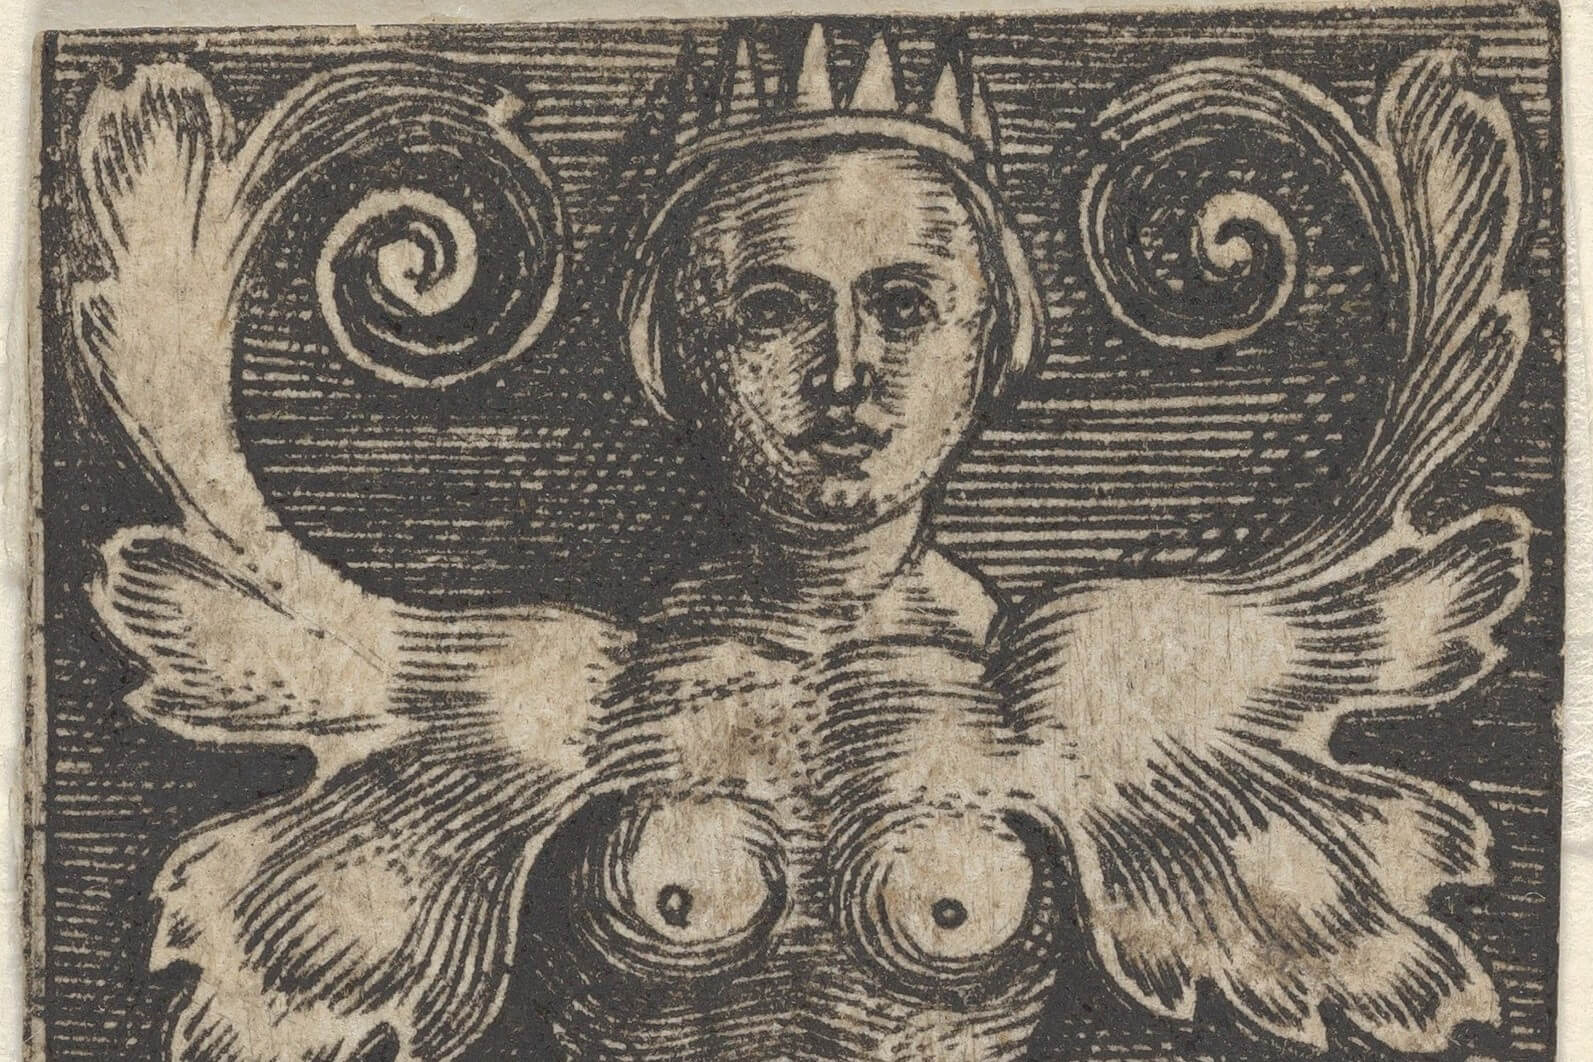 Sex and Gender Politics: Medieval and Early Modern Studies Symposium